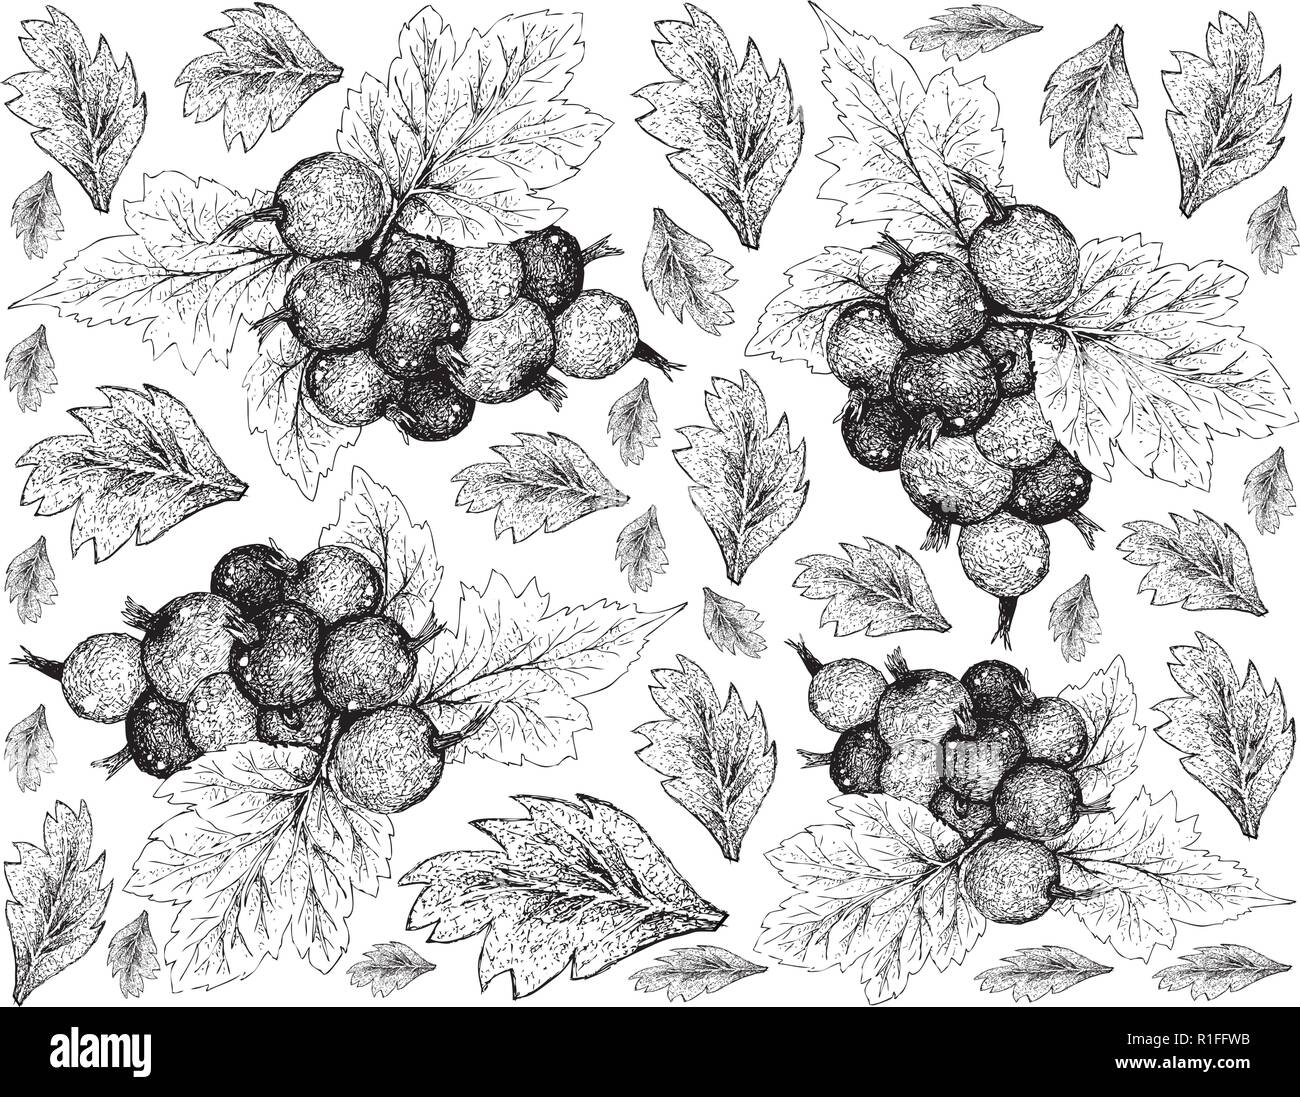 Berry Fruit, Illustration Wallpaper of Hand Drawn Sketch of Jostaberries Isolated on White Background. High in Vitamin C and Minerals with Essential N - Stock Vector